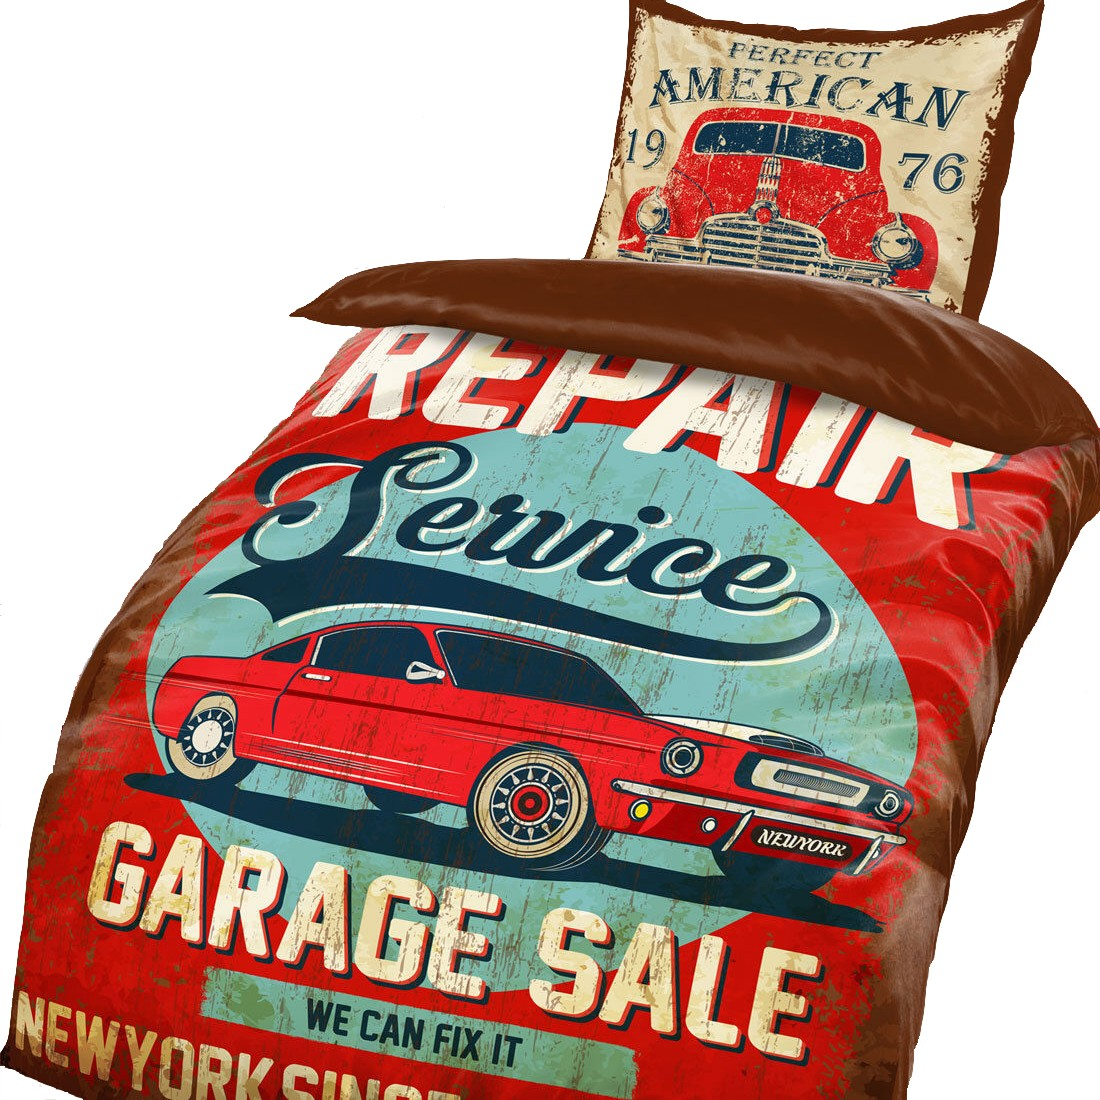 Designer Bettwäsche Sale New York Usa Garage Car Sale Bettwäsche Mikrofaser 135x200cm